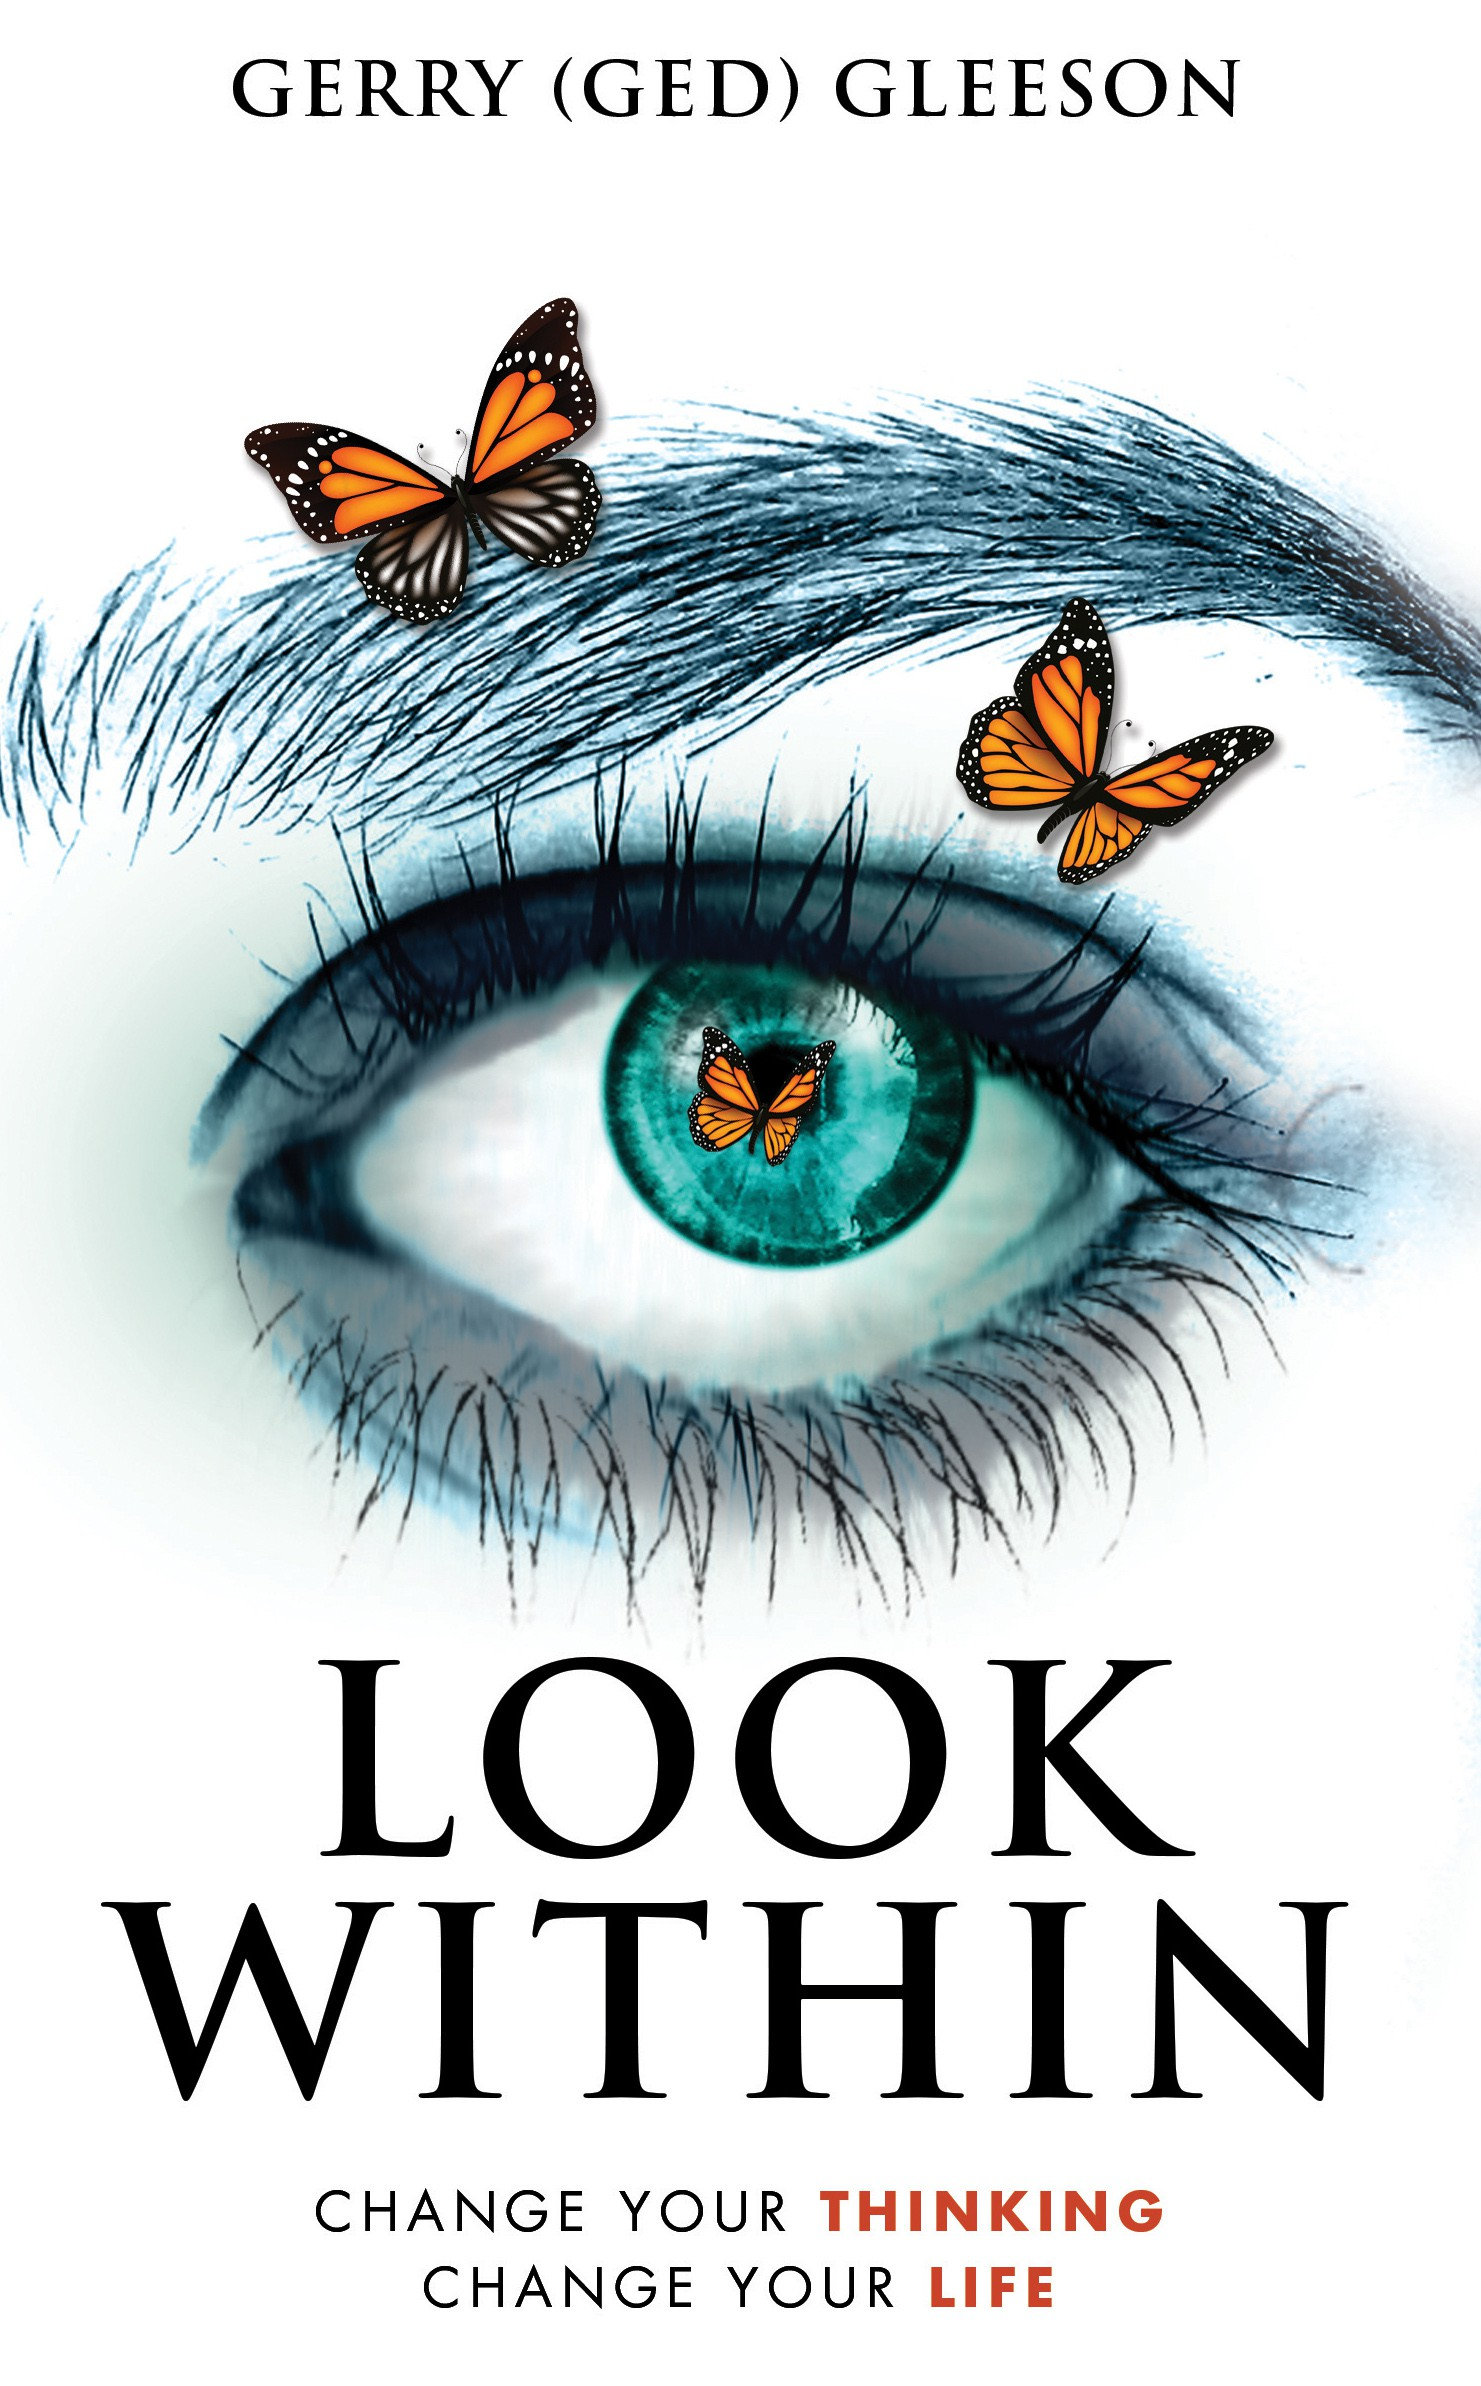 I am publishing a book with the title: LOOK WITHIN - Change your Thinking, Change your Life